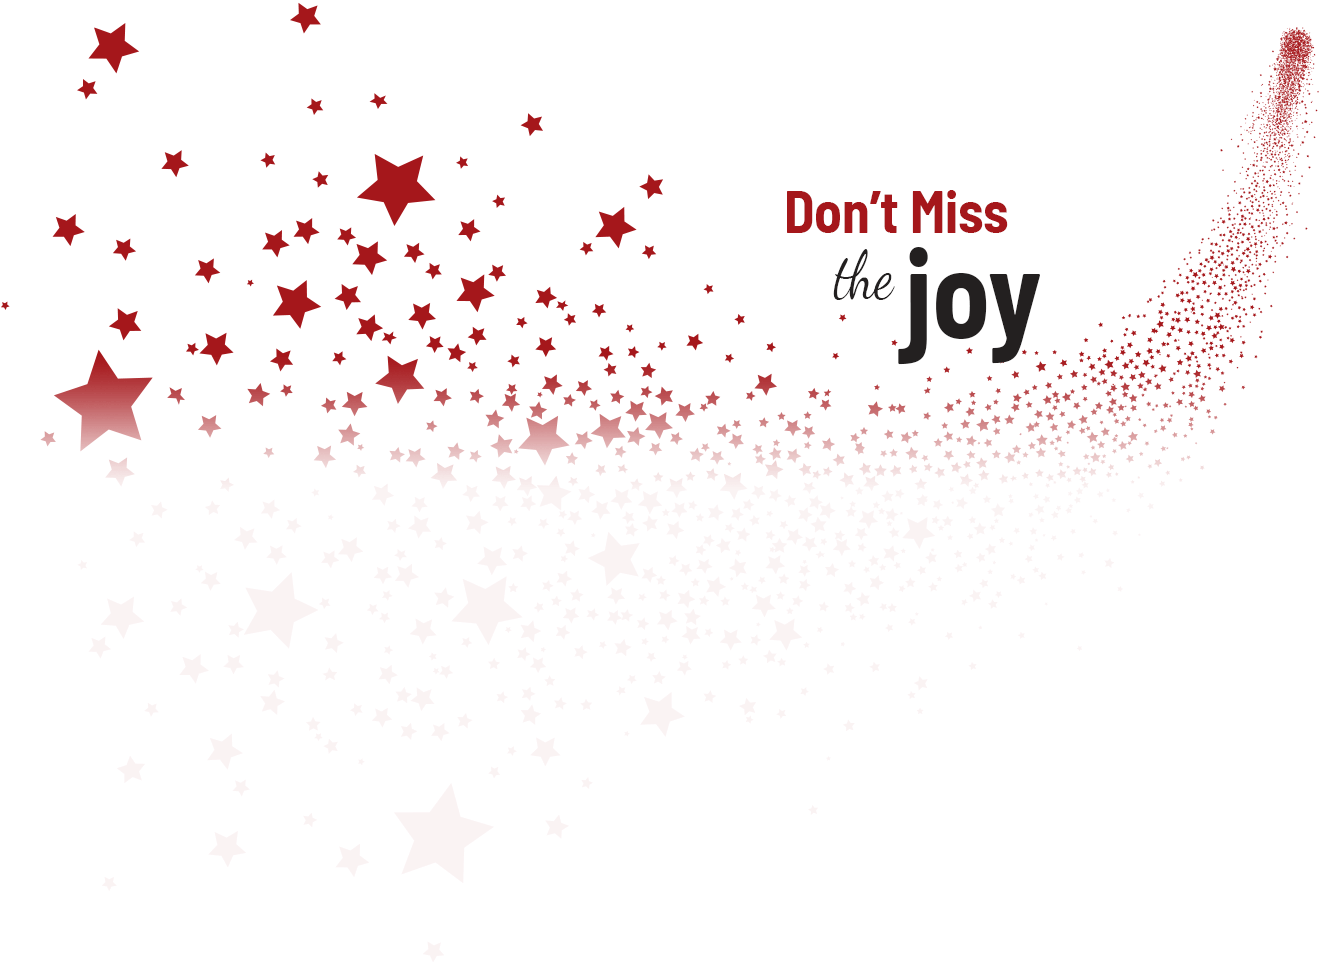 Don't Miss the Joy with star background